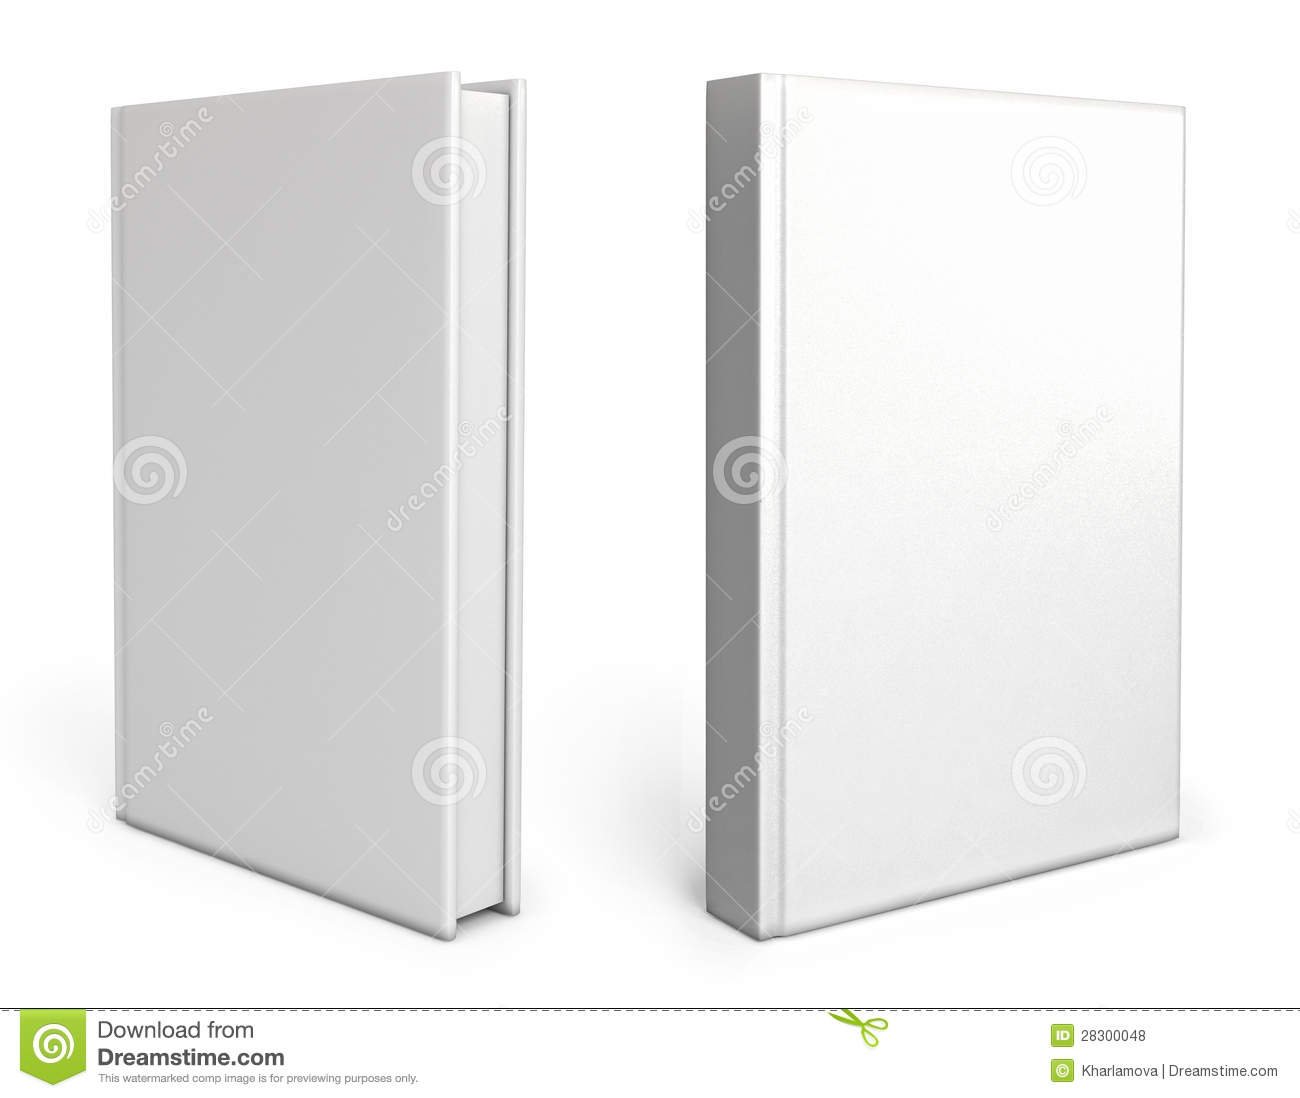 Book With White Cover : Front view of blank book cover white stock illustration